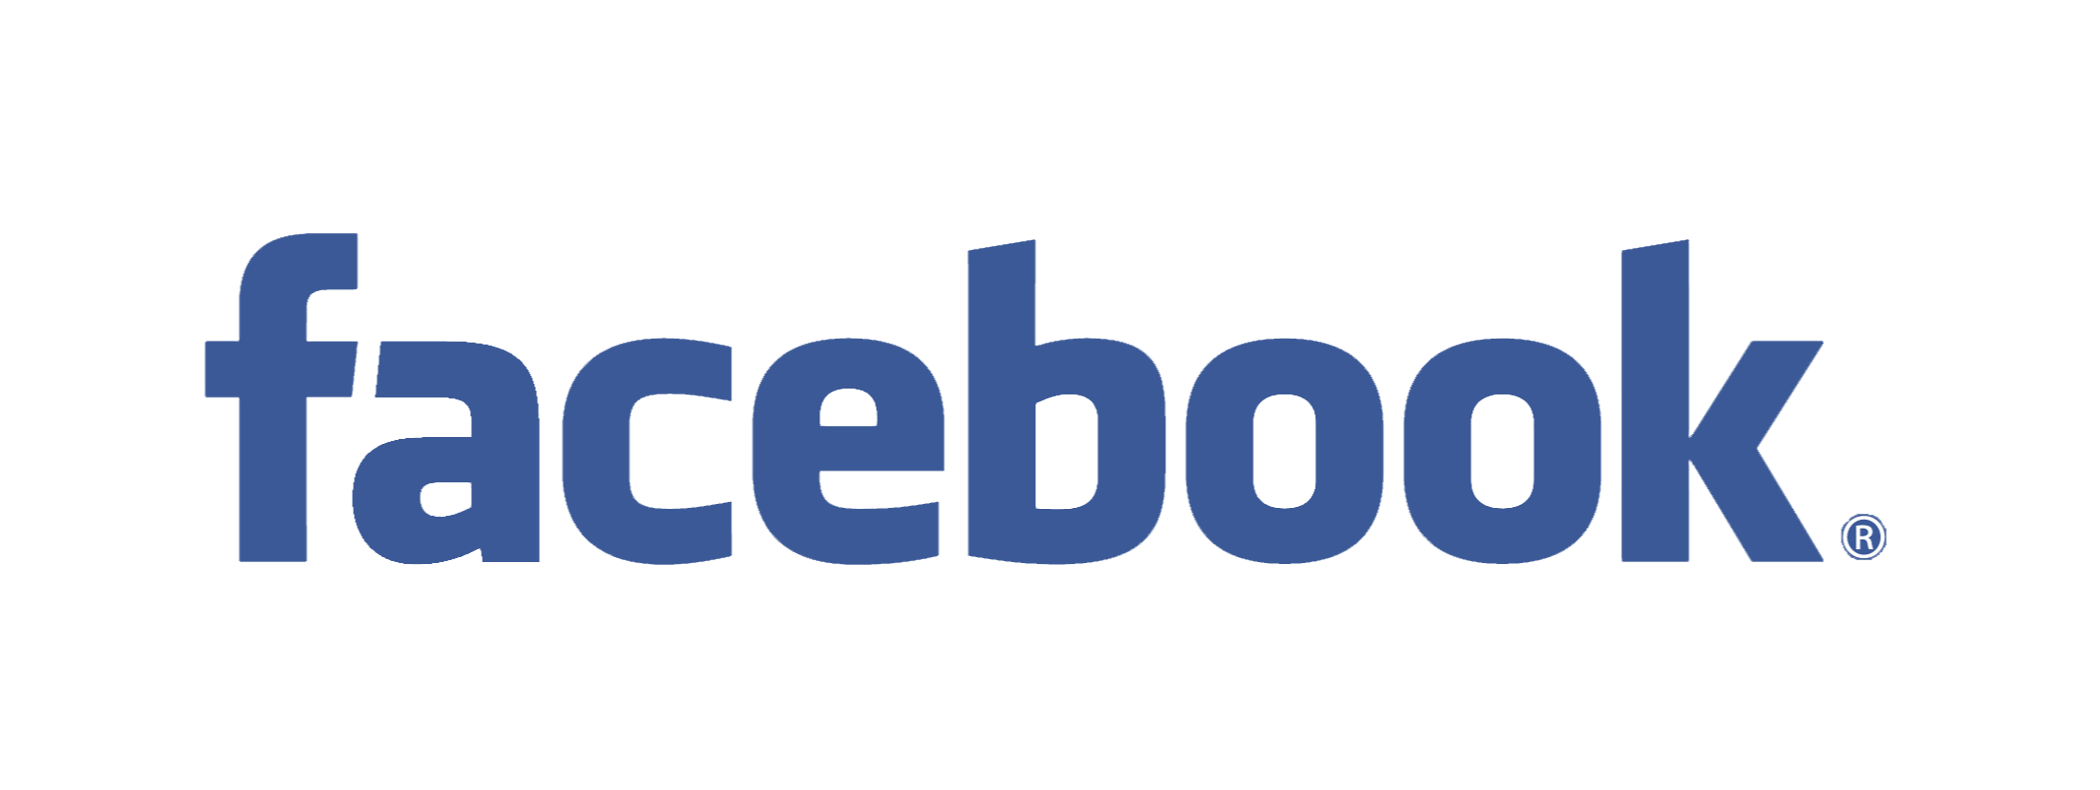 Facebook logo reversed